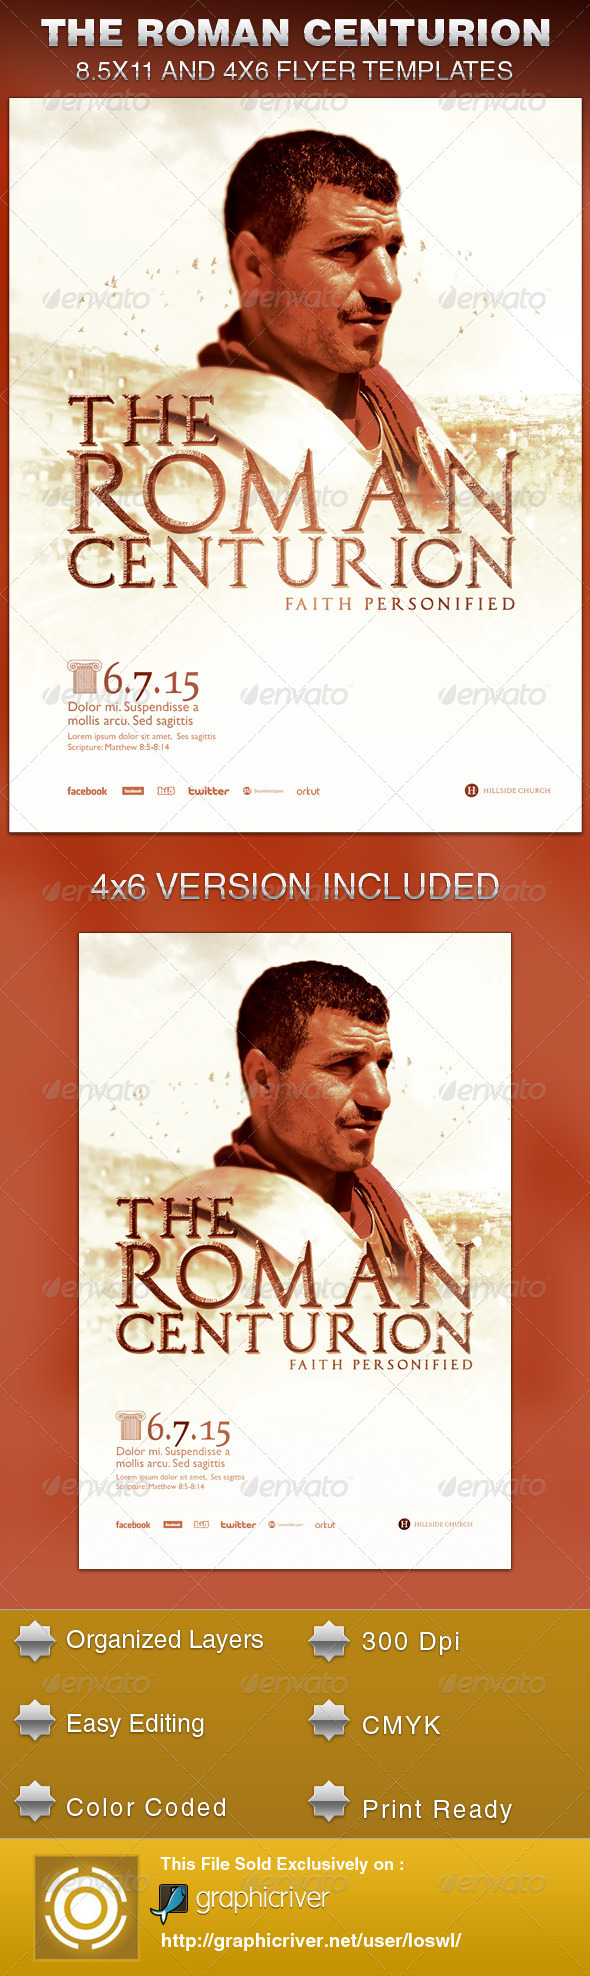 The Roman Centurion Church Flyer Template - Church Flyers